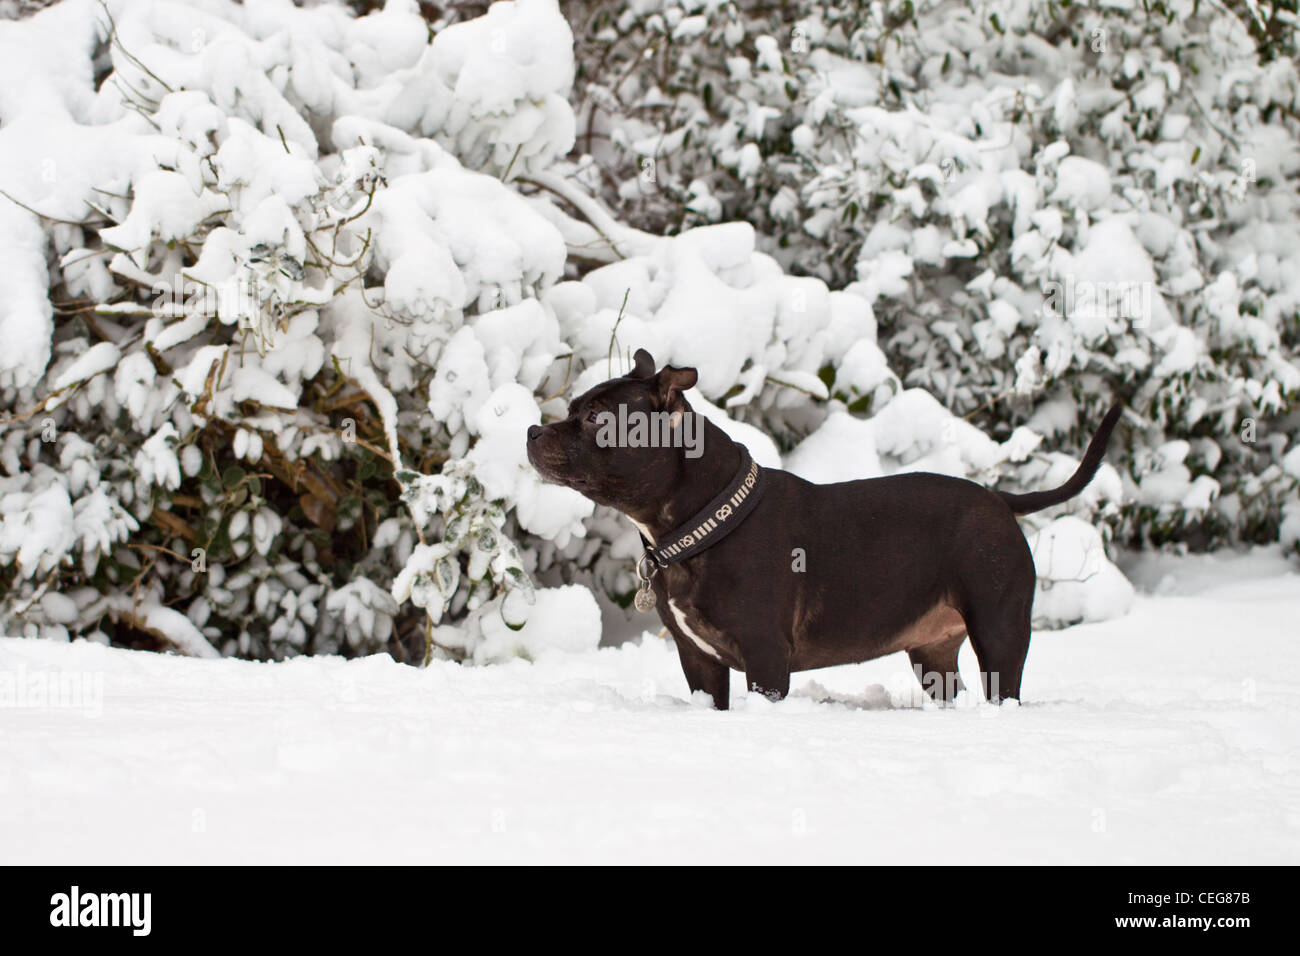 Staffordshire Bul Terrier in the snow. - Stock Image